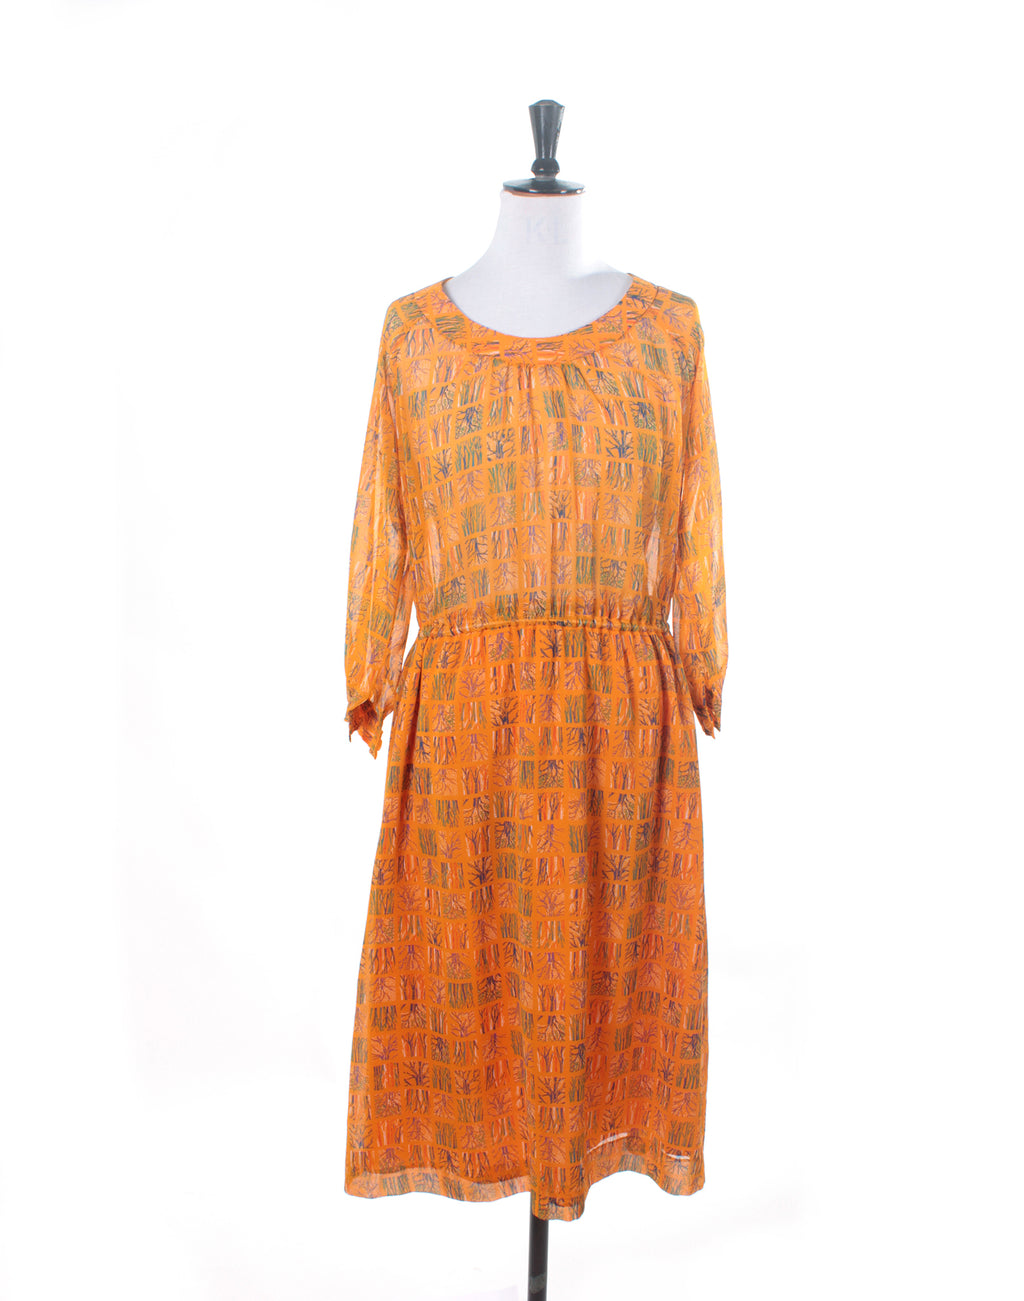 Vintage 80's Yellow Tree Print Chiffon Dress